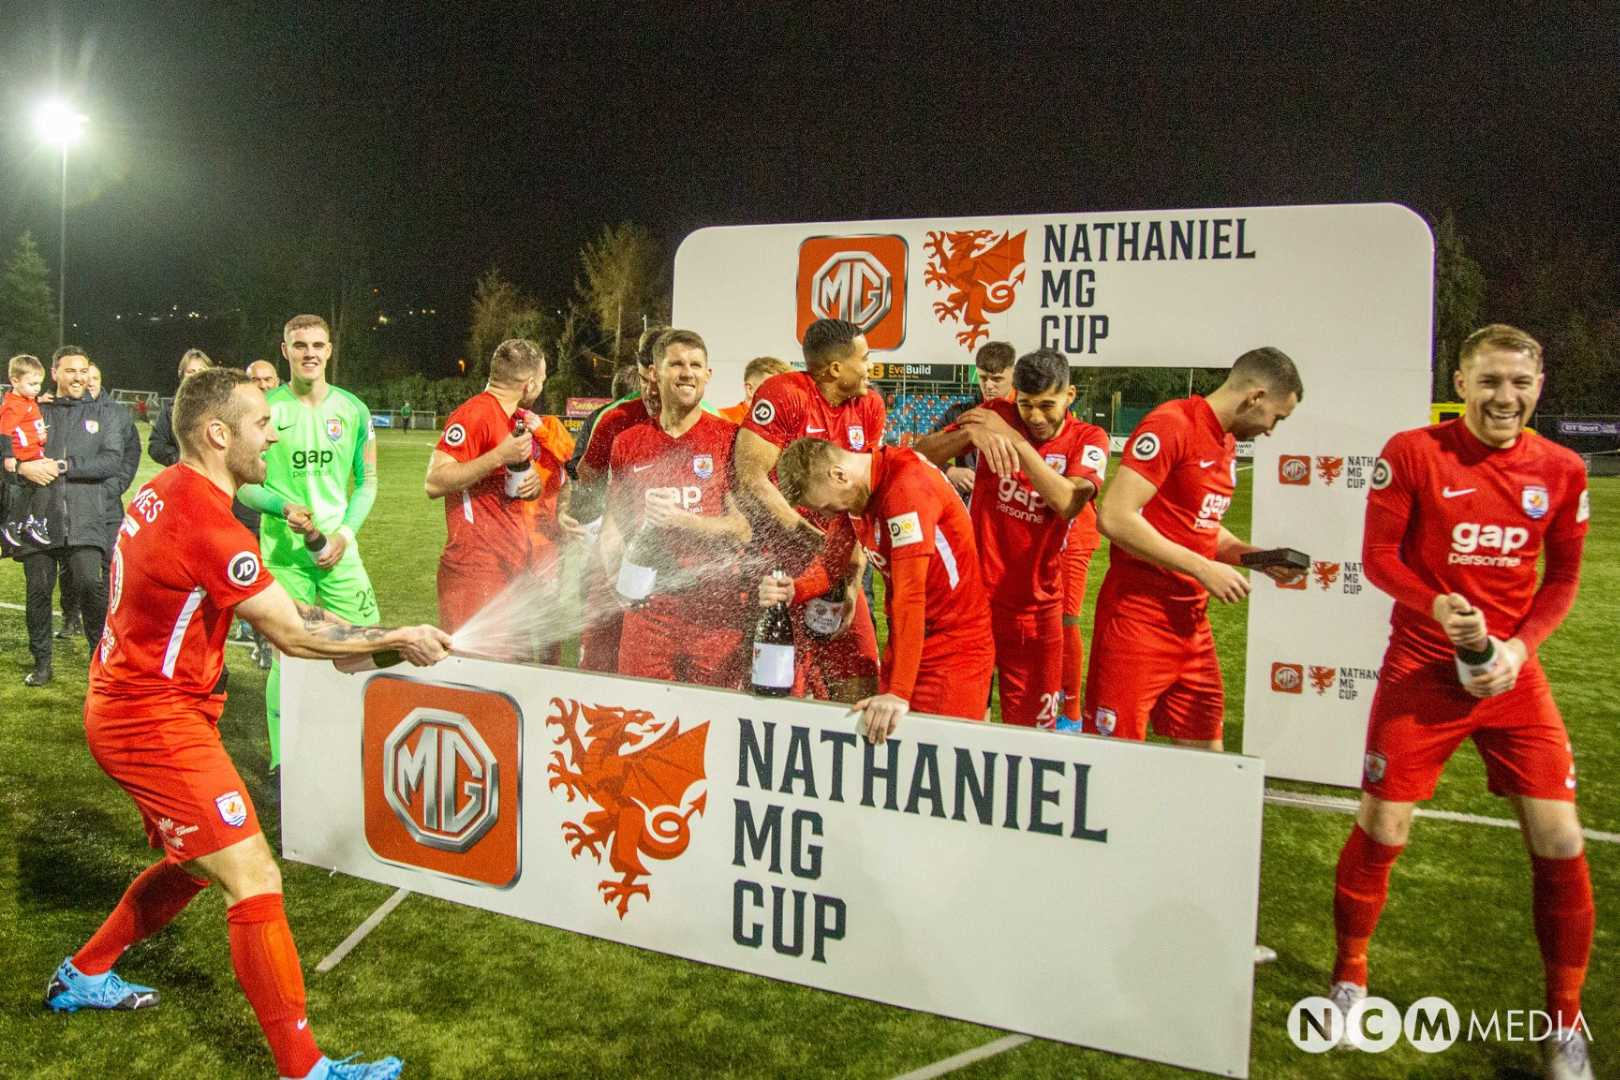 Nathaniel MG Cup first round draw